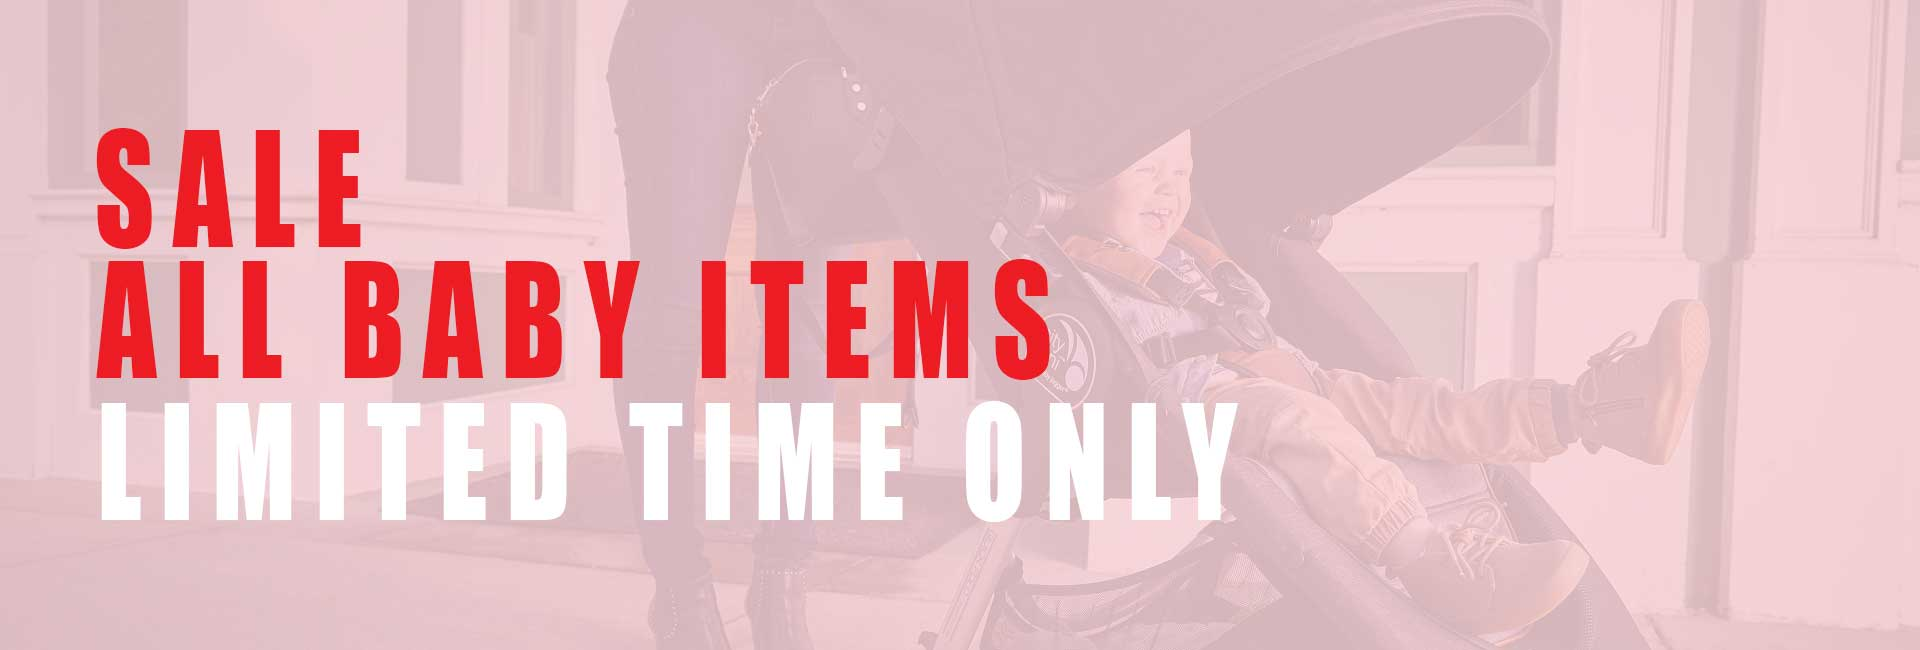 Sale items instore and online